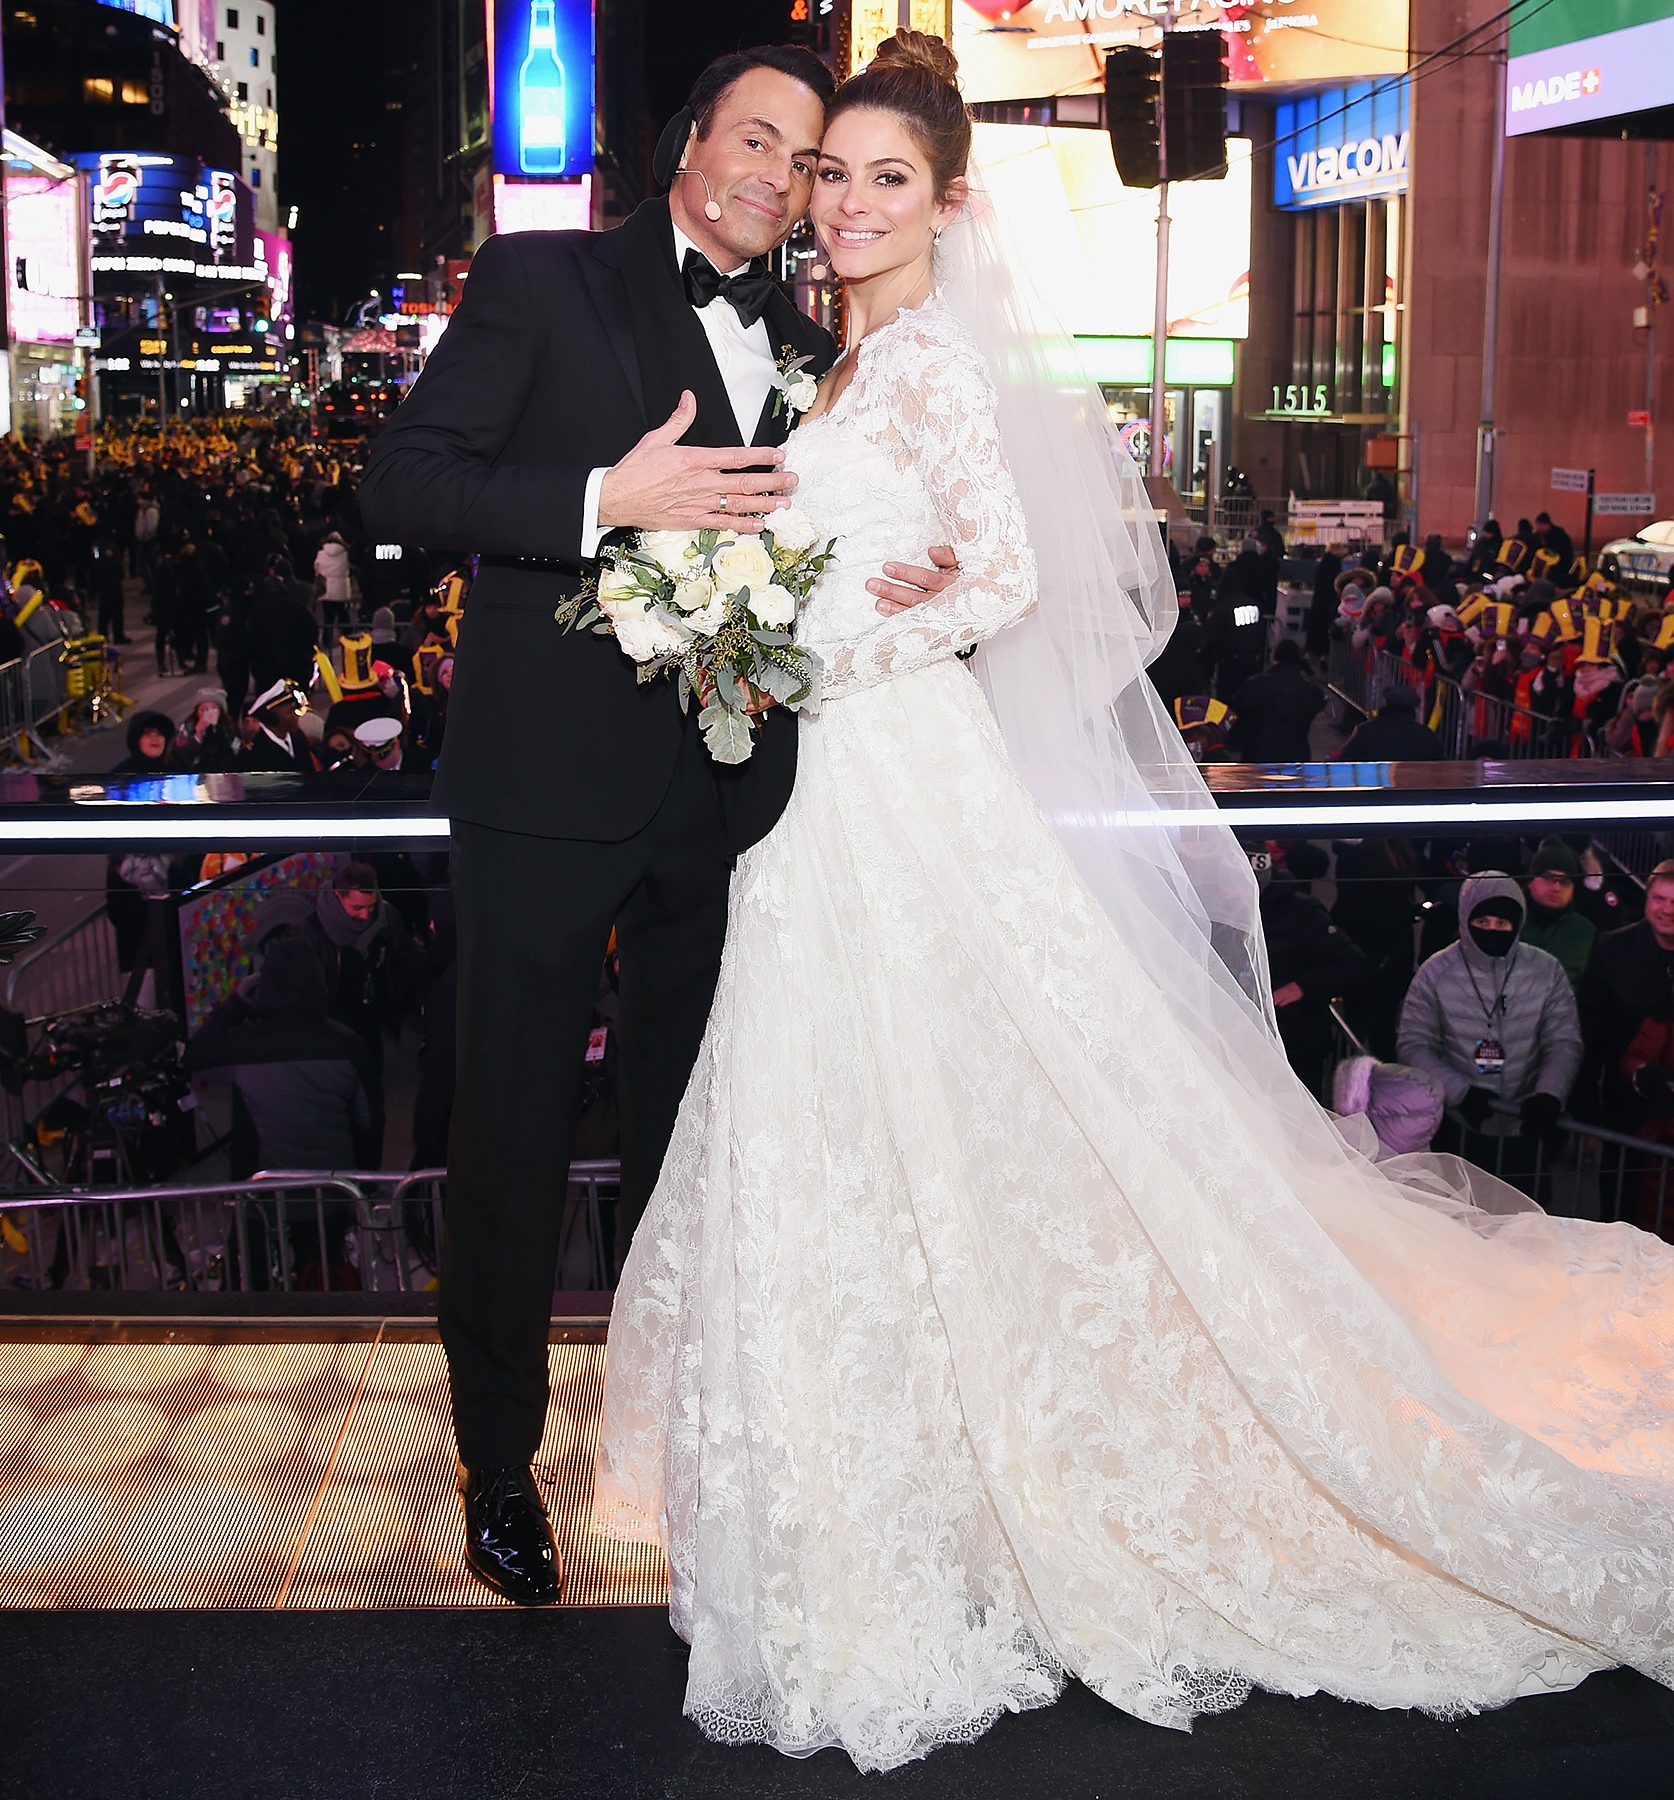 Maria Menounos Marries Keven Undergaro on New Year's Eve Show